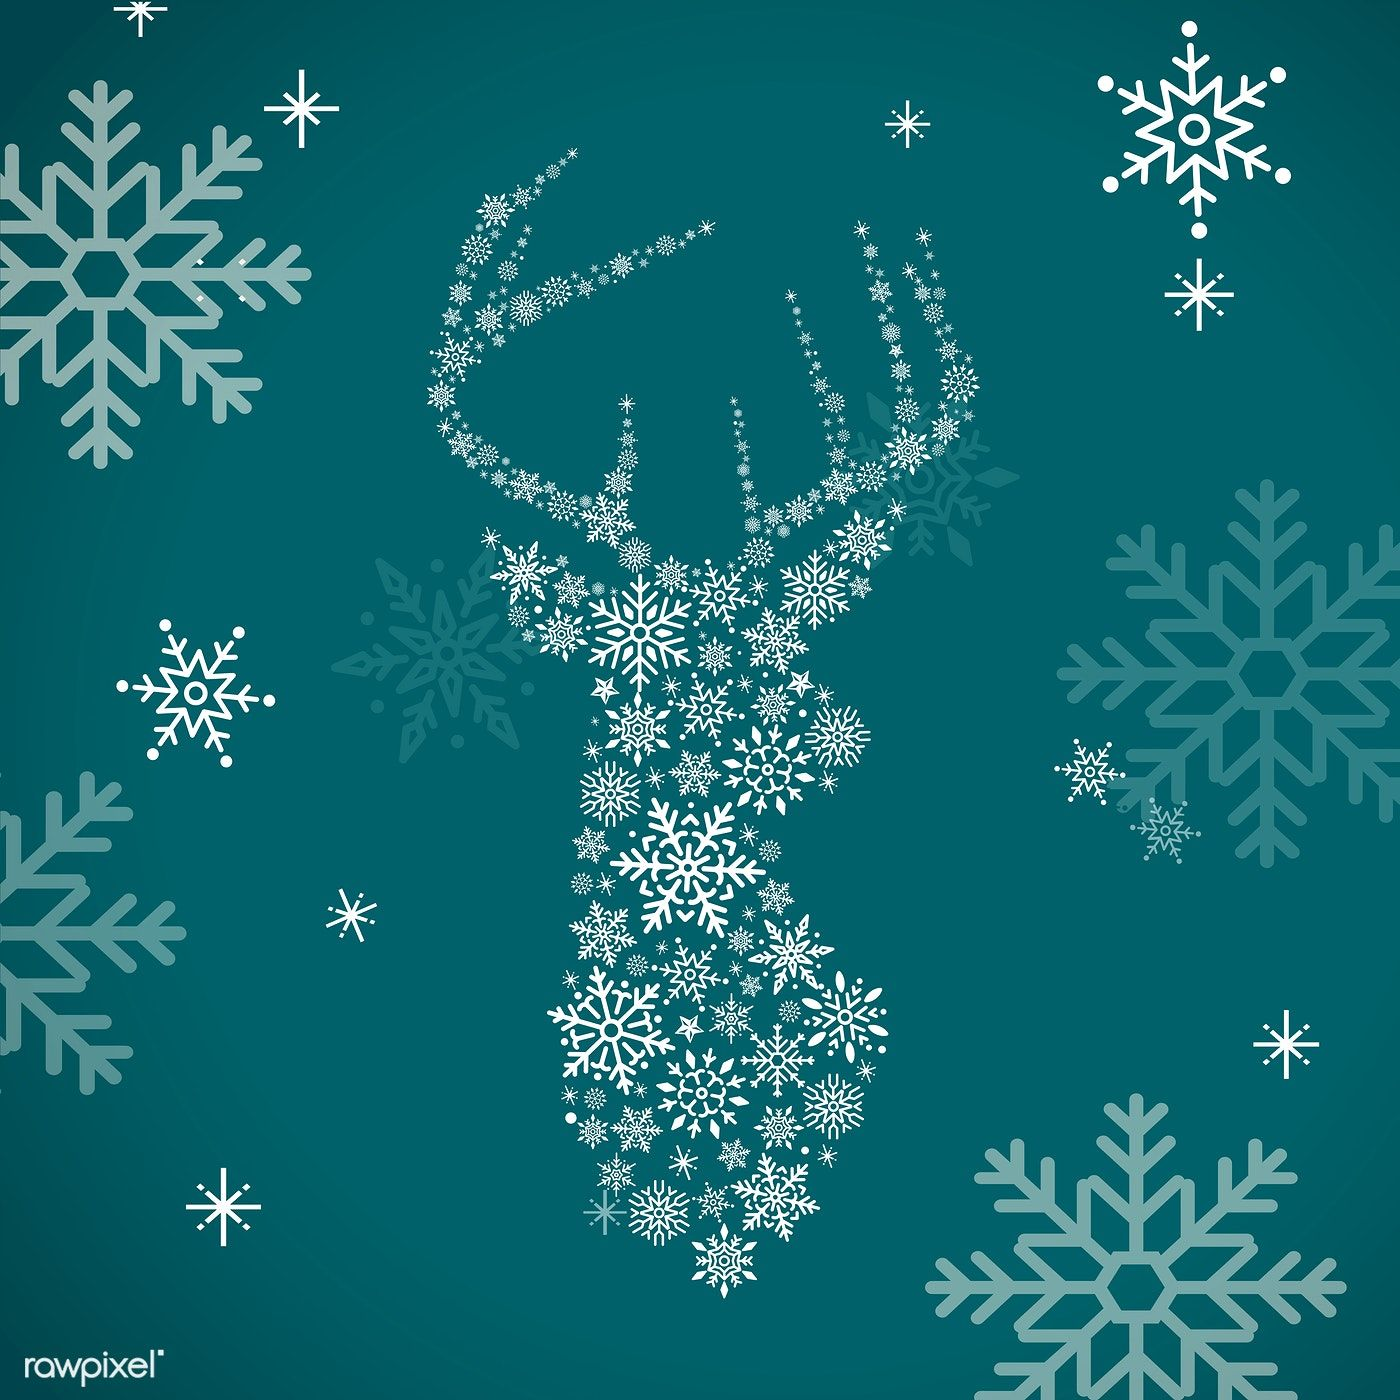 Green Christmas Winter Holiday Background With Snowflake And Reindeer Vector Free Image By Rawpixel C Holiday Background Vector Free Free Vector Illustration